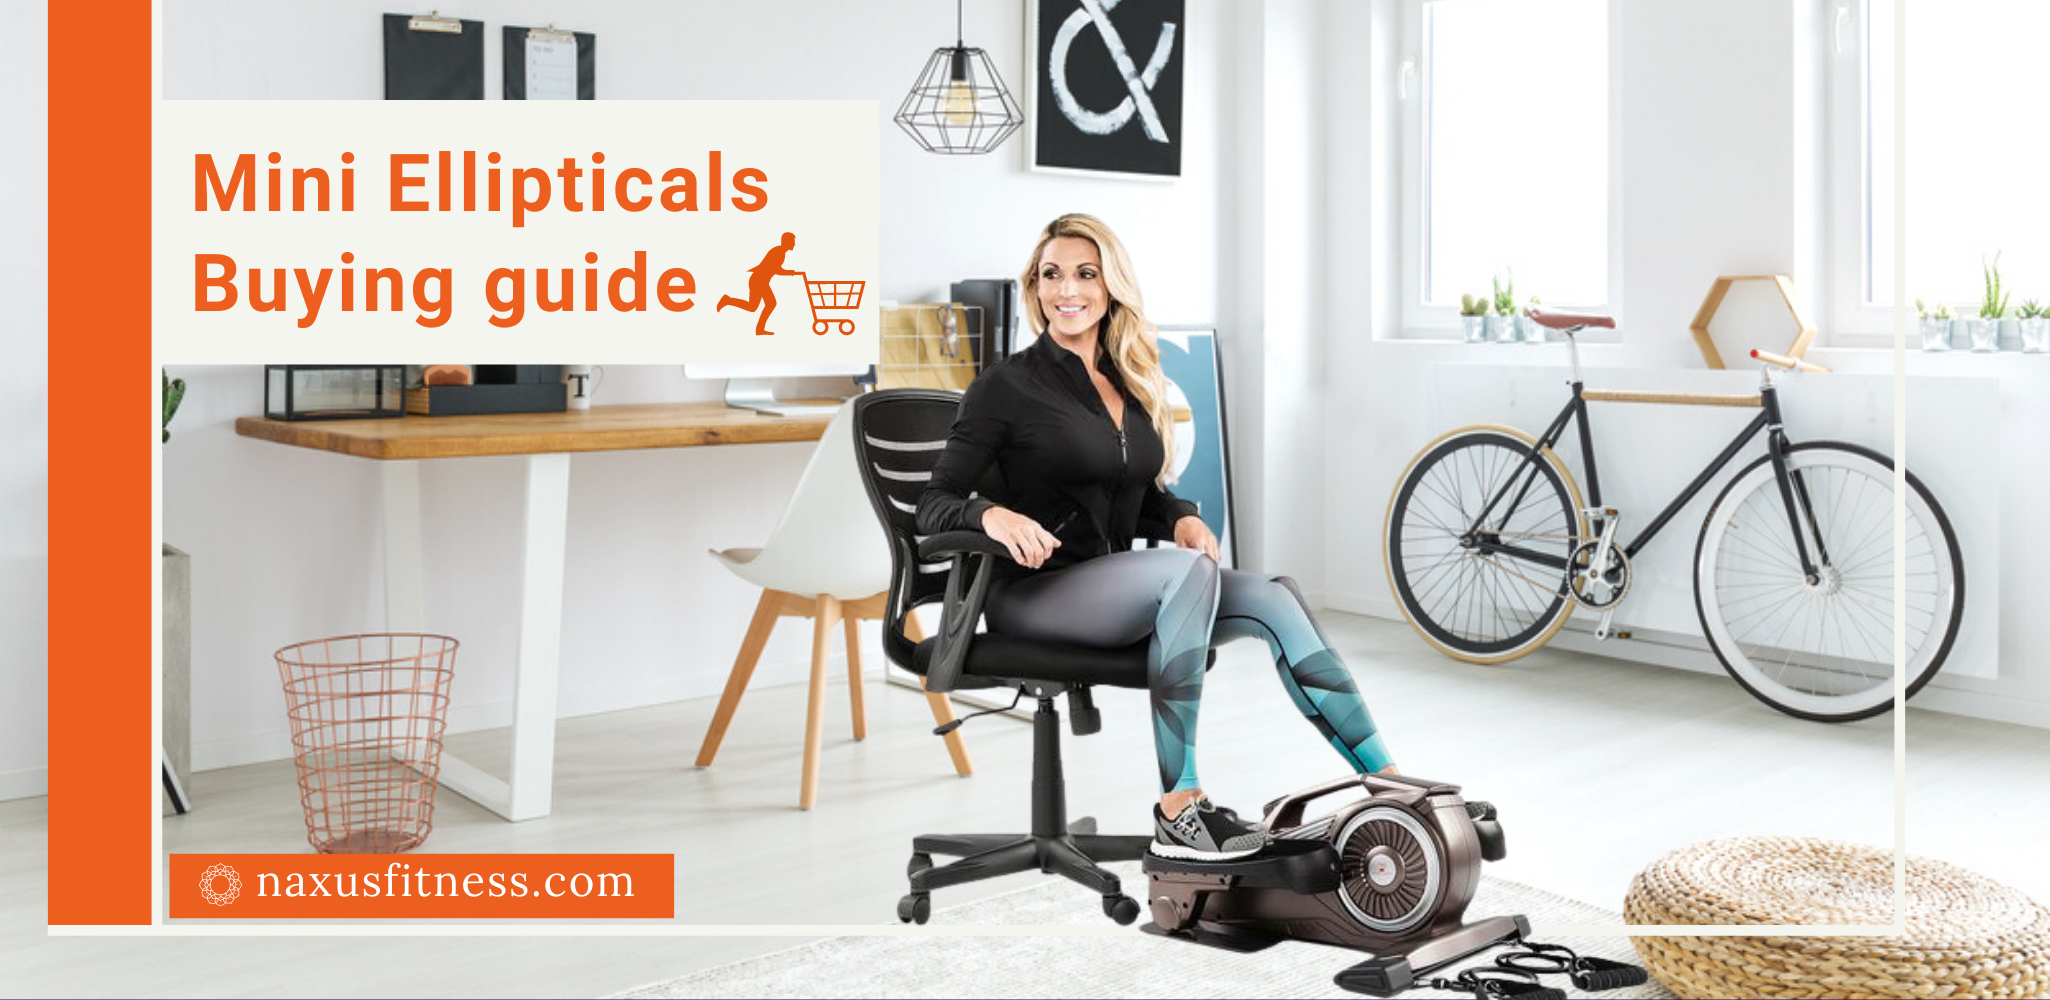 mini elliptical buying guide